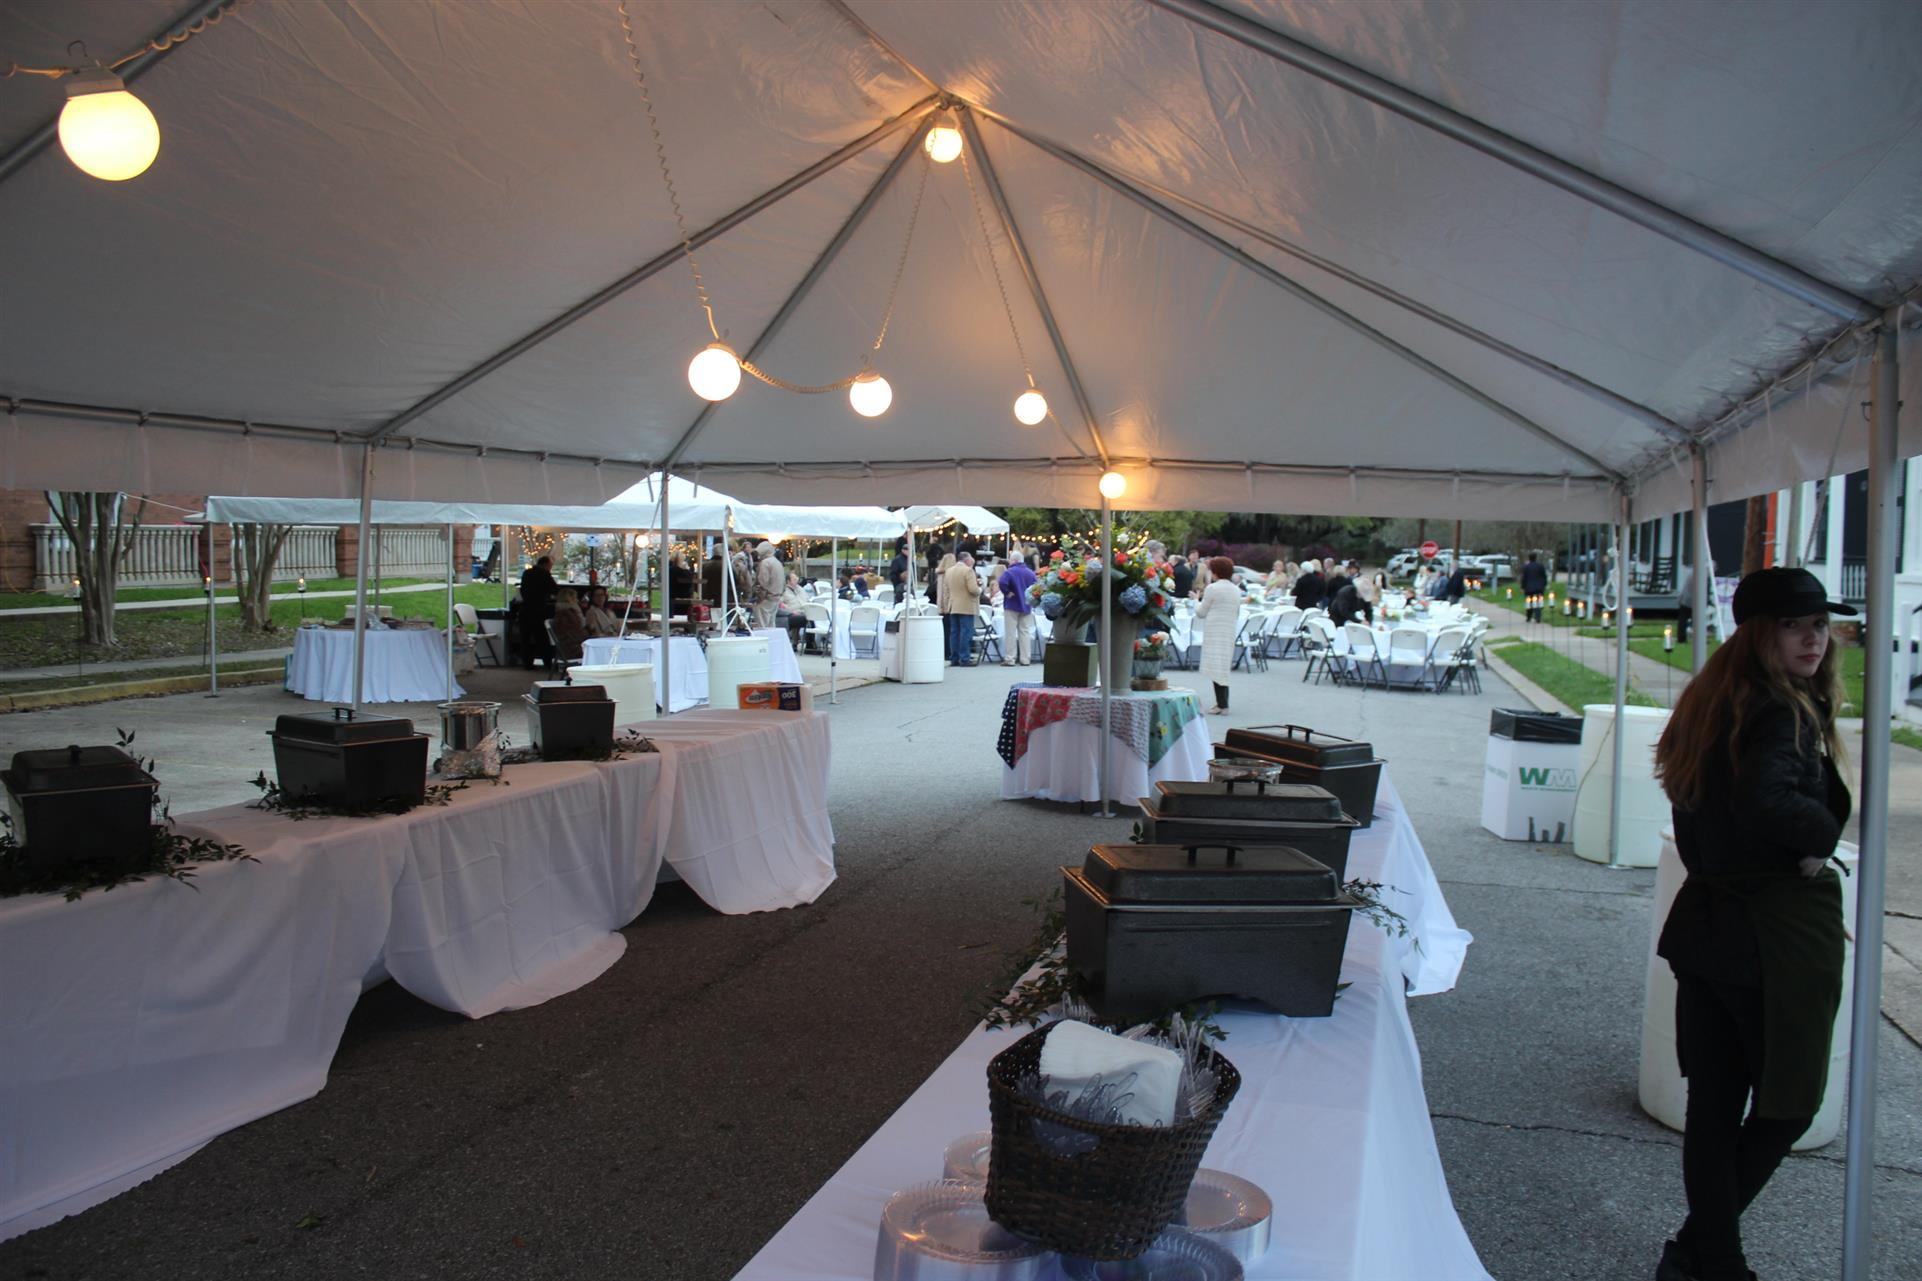 tables set up for a buffet under a tent for an outside event